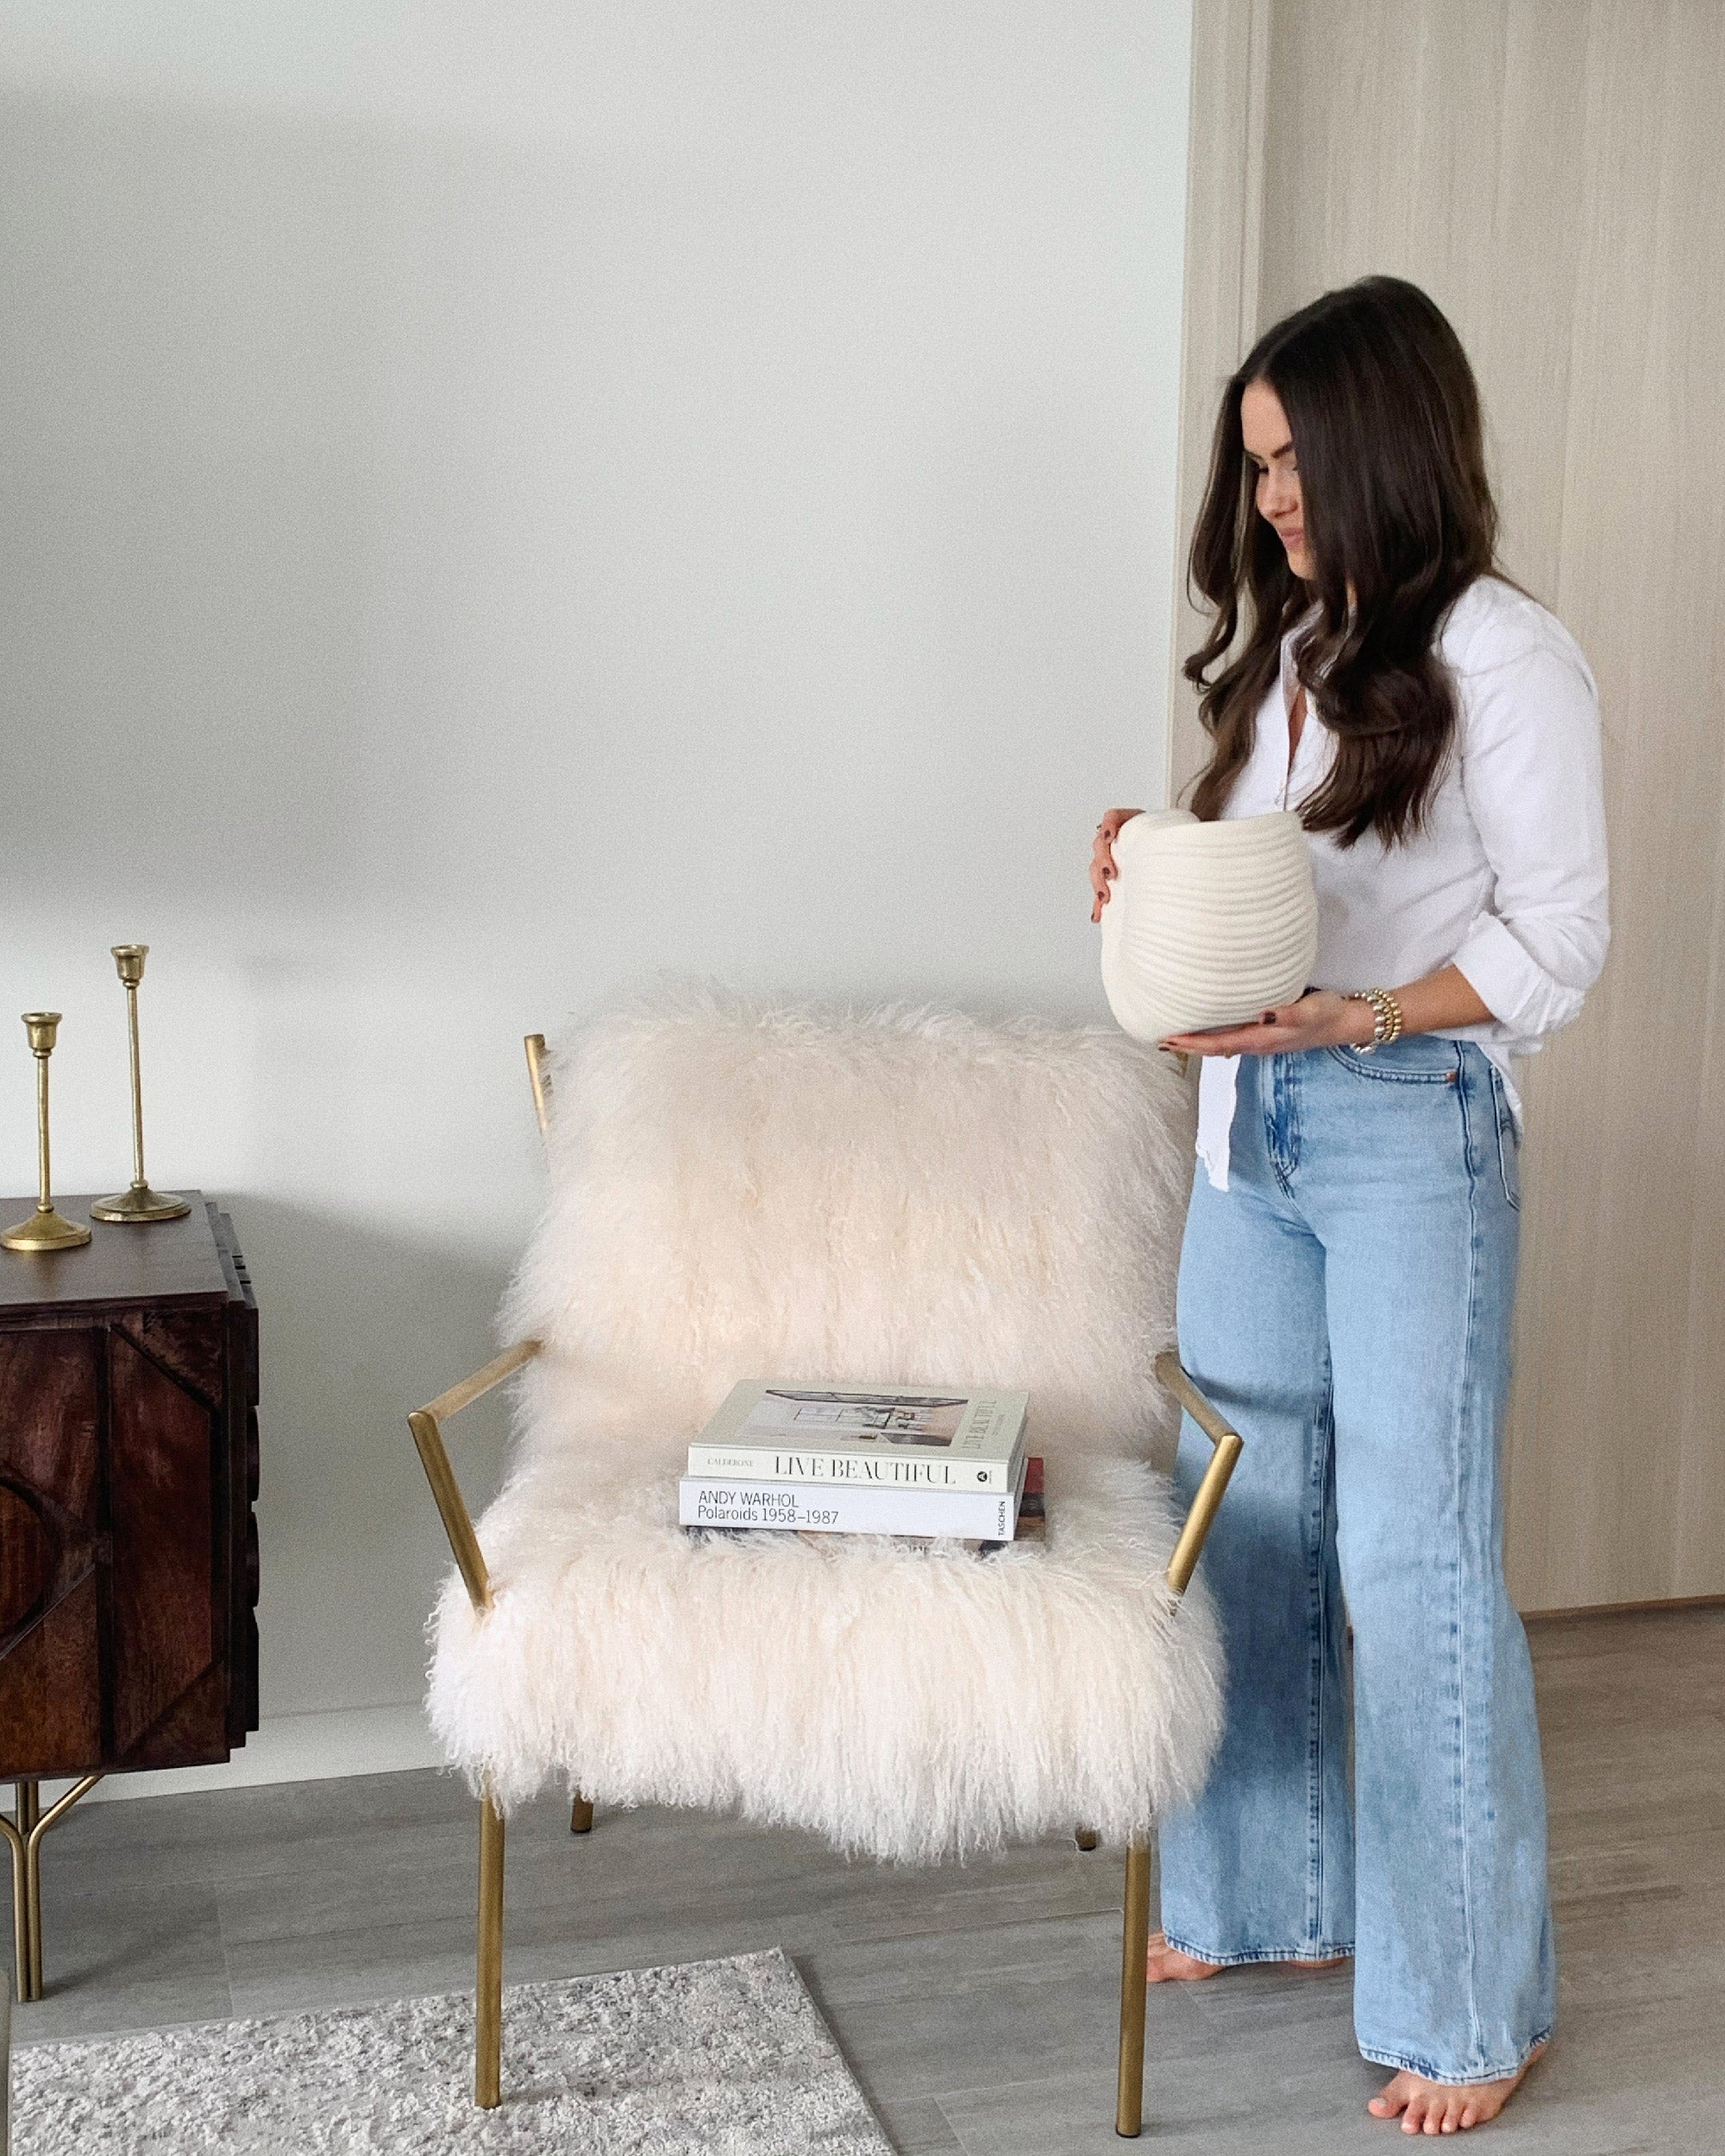 An interview with Holly Bossung, Founder of From Your Muse